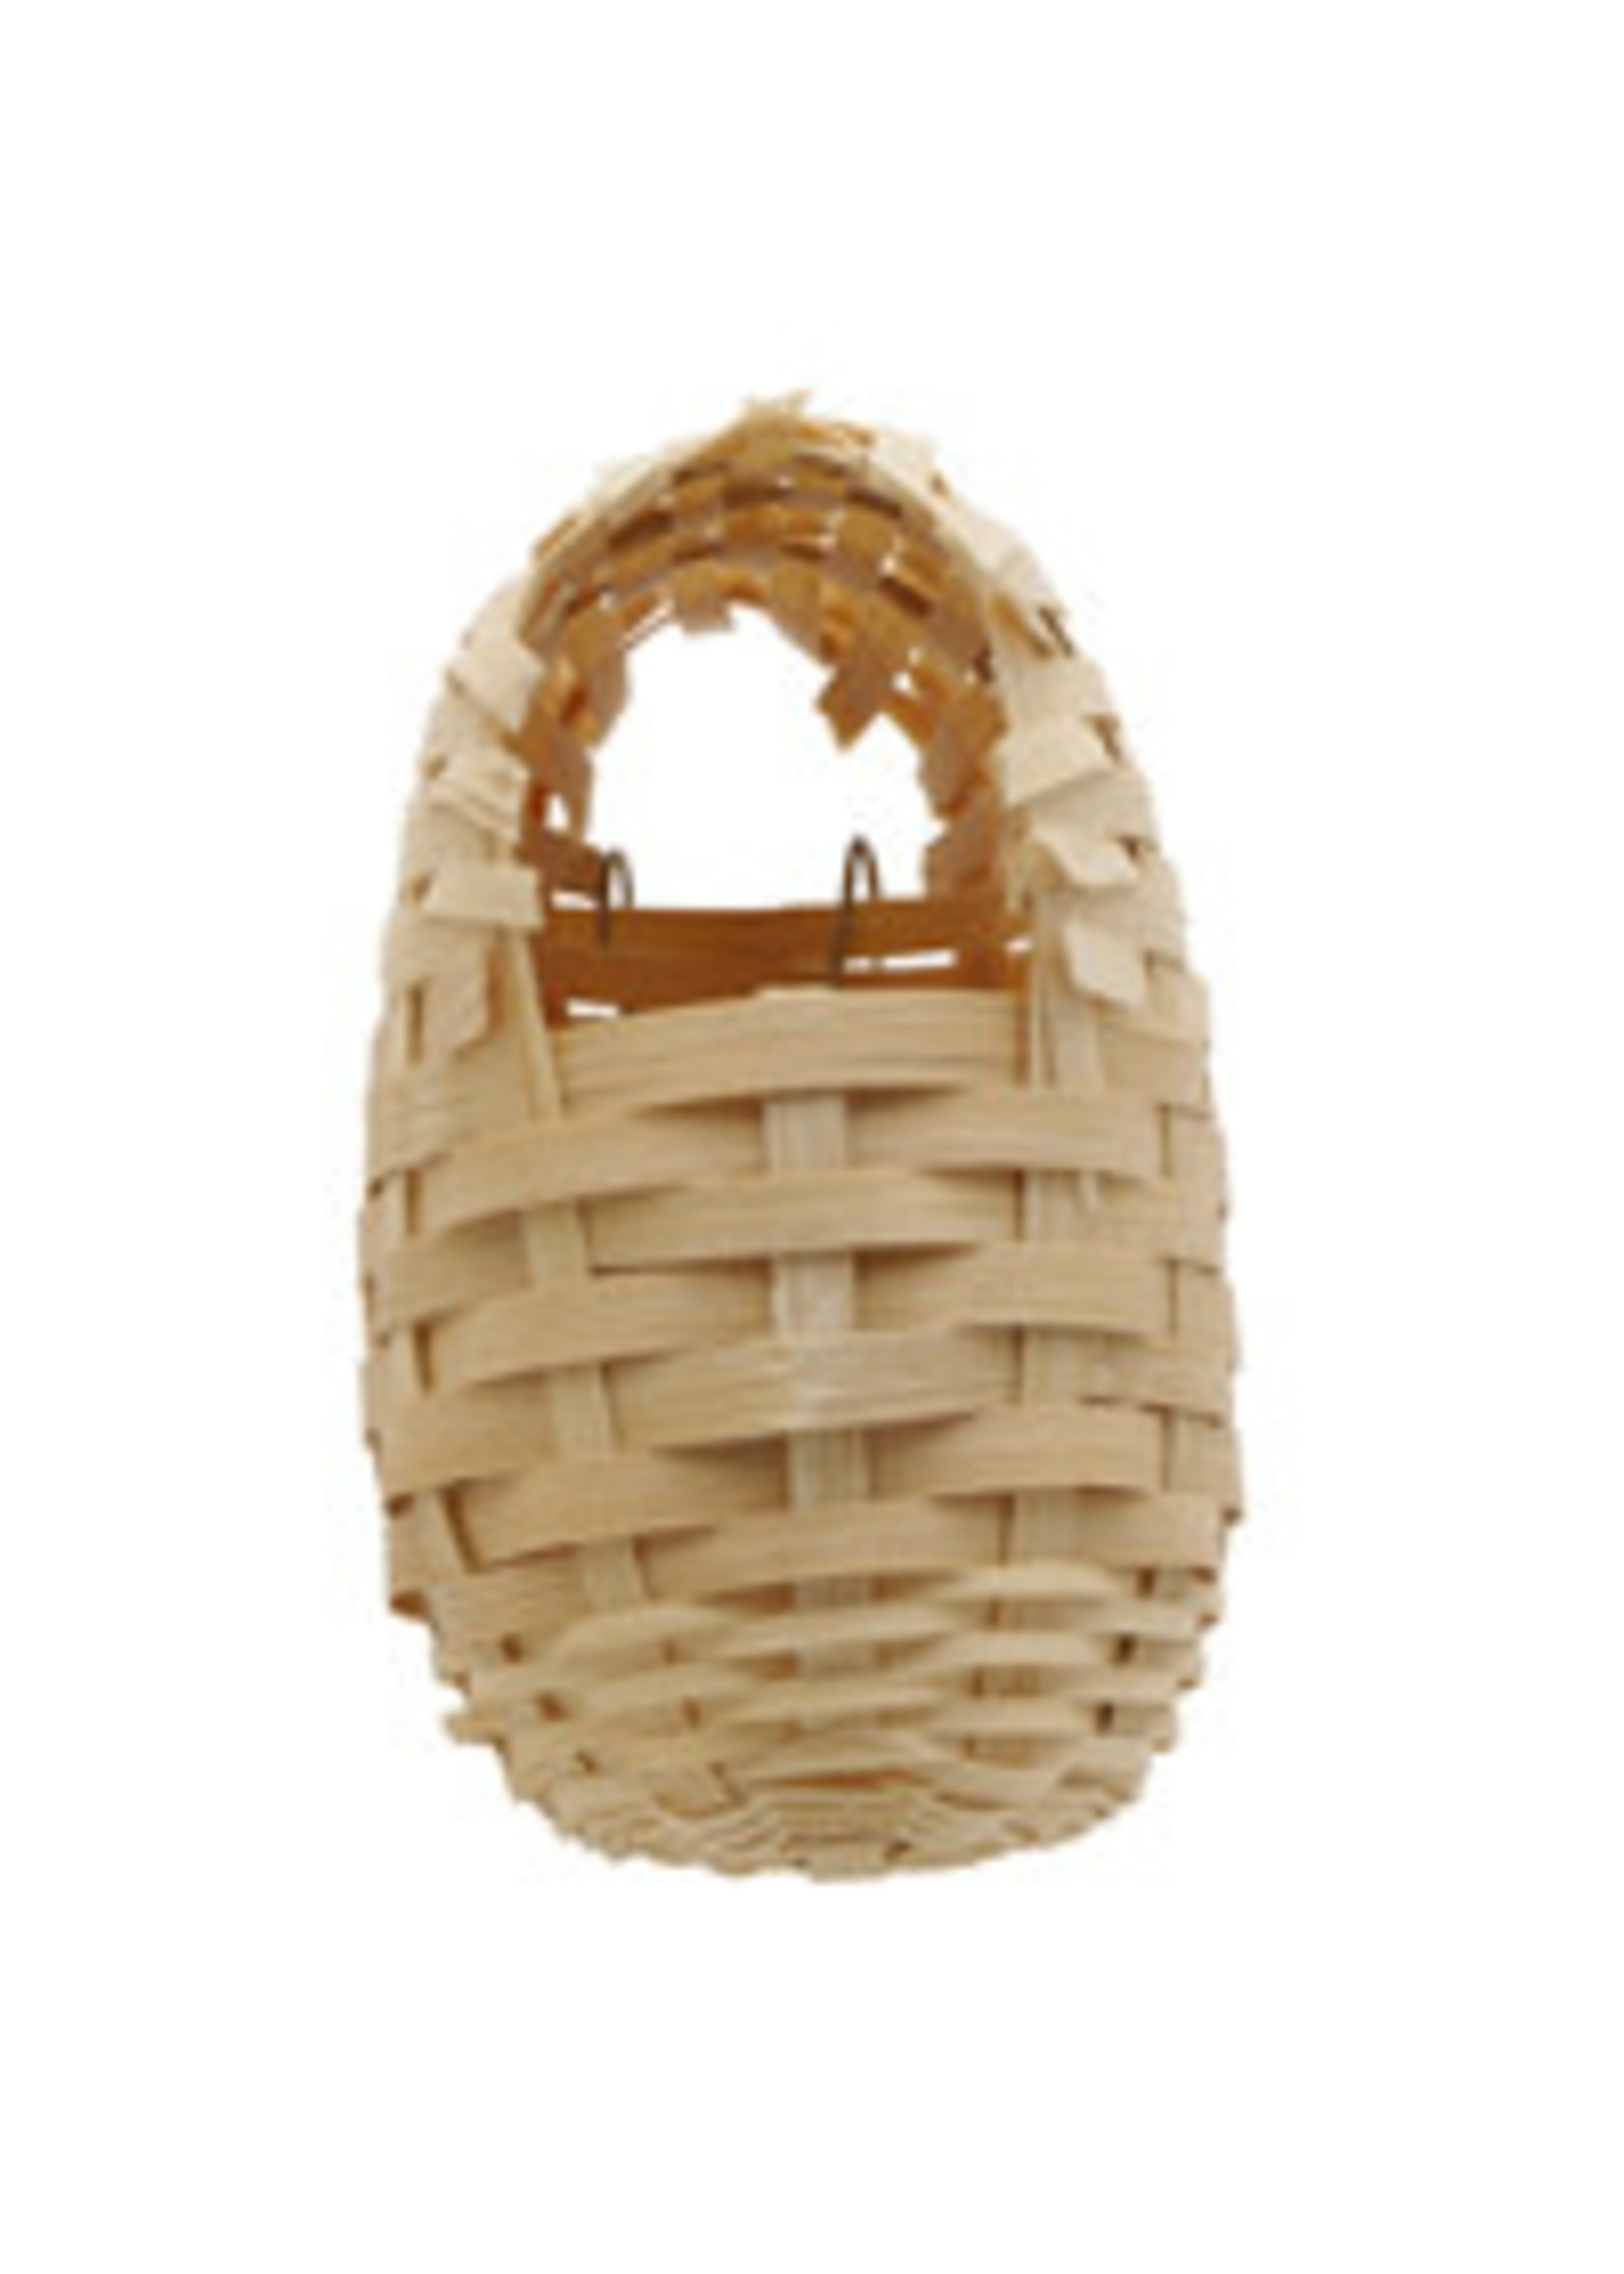 Hagen Living World Bamboo Bird Nest for Finches - Small - 8 cm x 9 cm x 12 cm (3.1in x 3.5in x 4.7in in) 82001